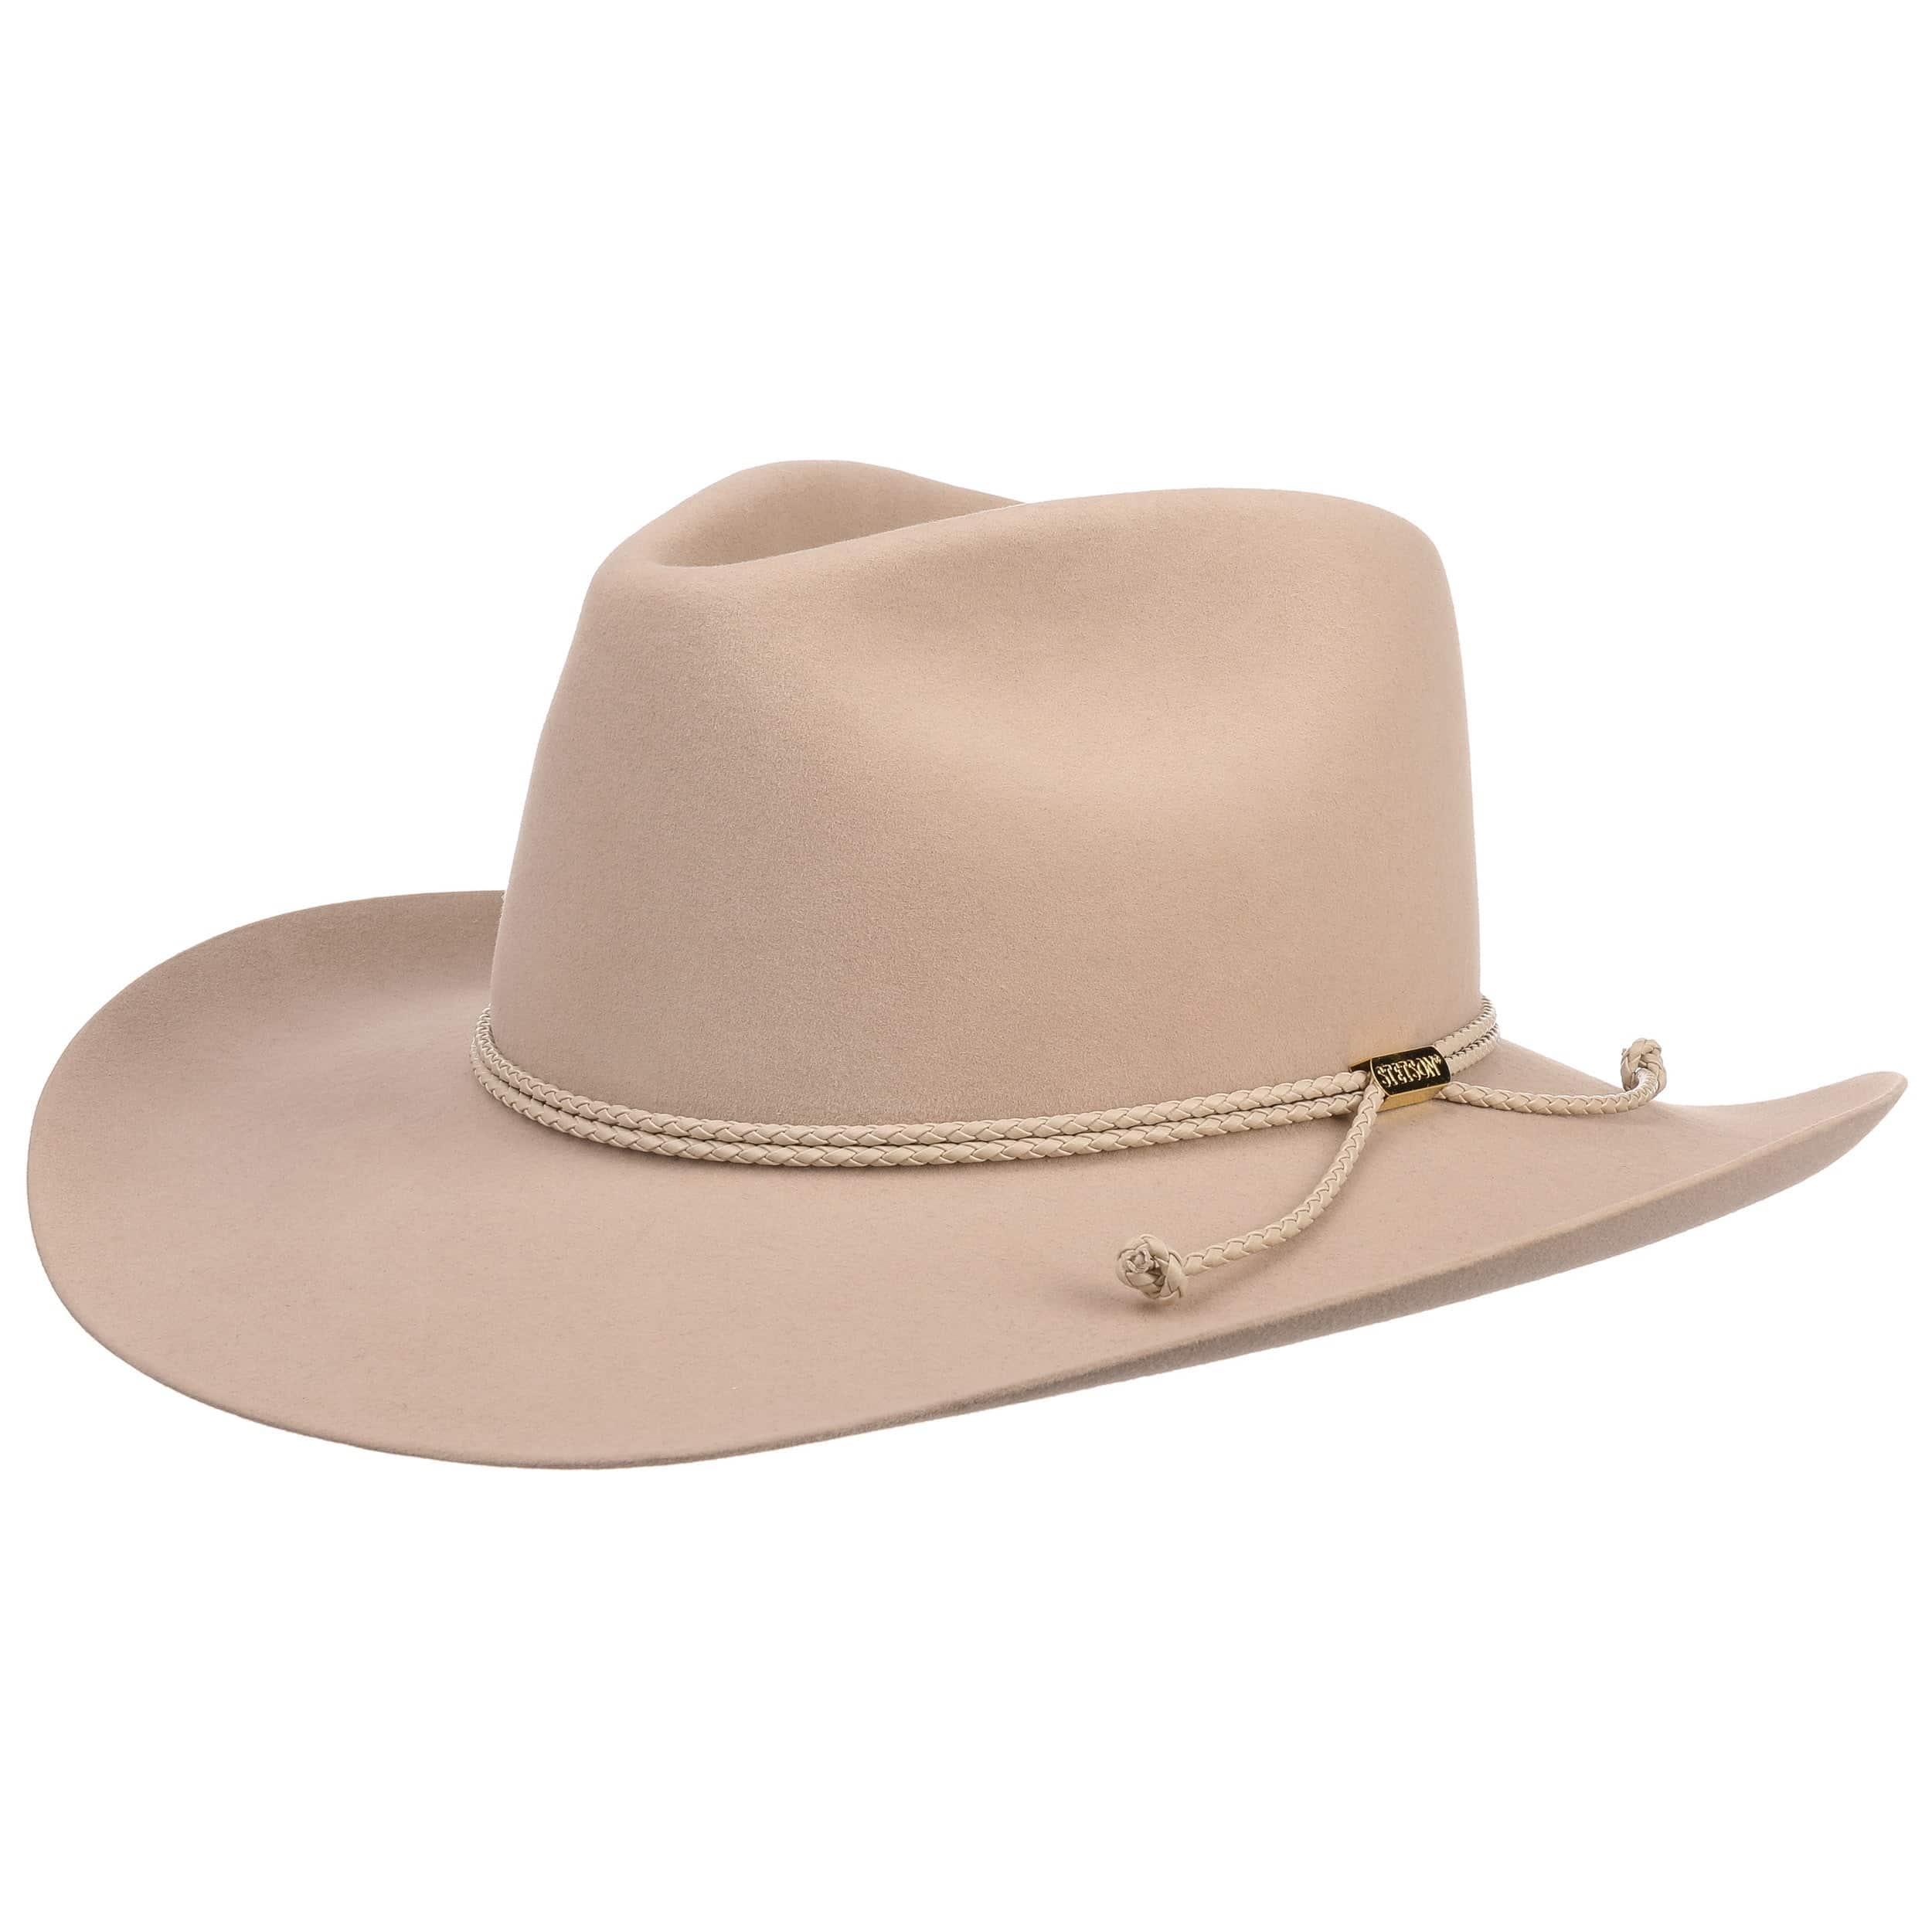 698f756a51ac2 ... Carson Outdoor Cowboy Hat by Stetson - oatmeal 5